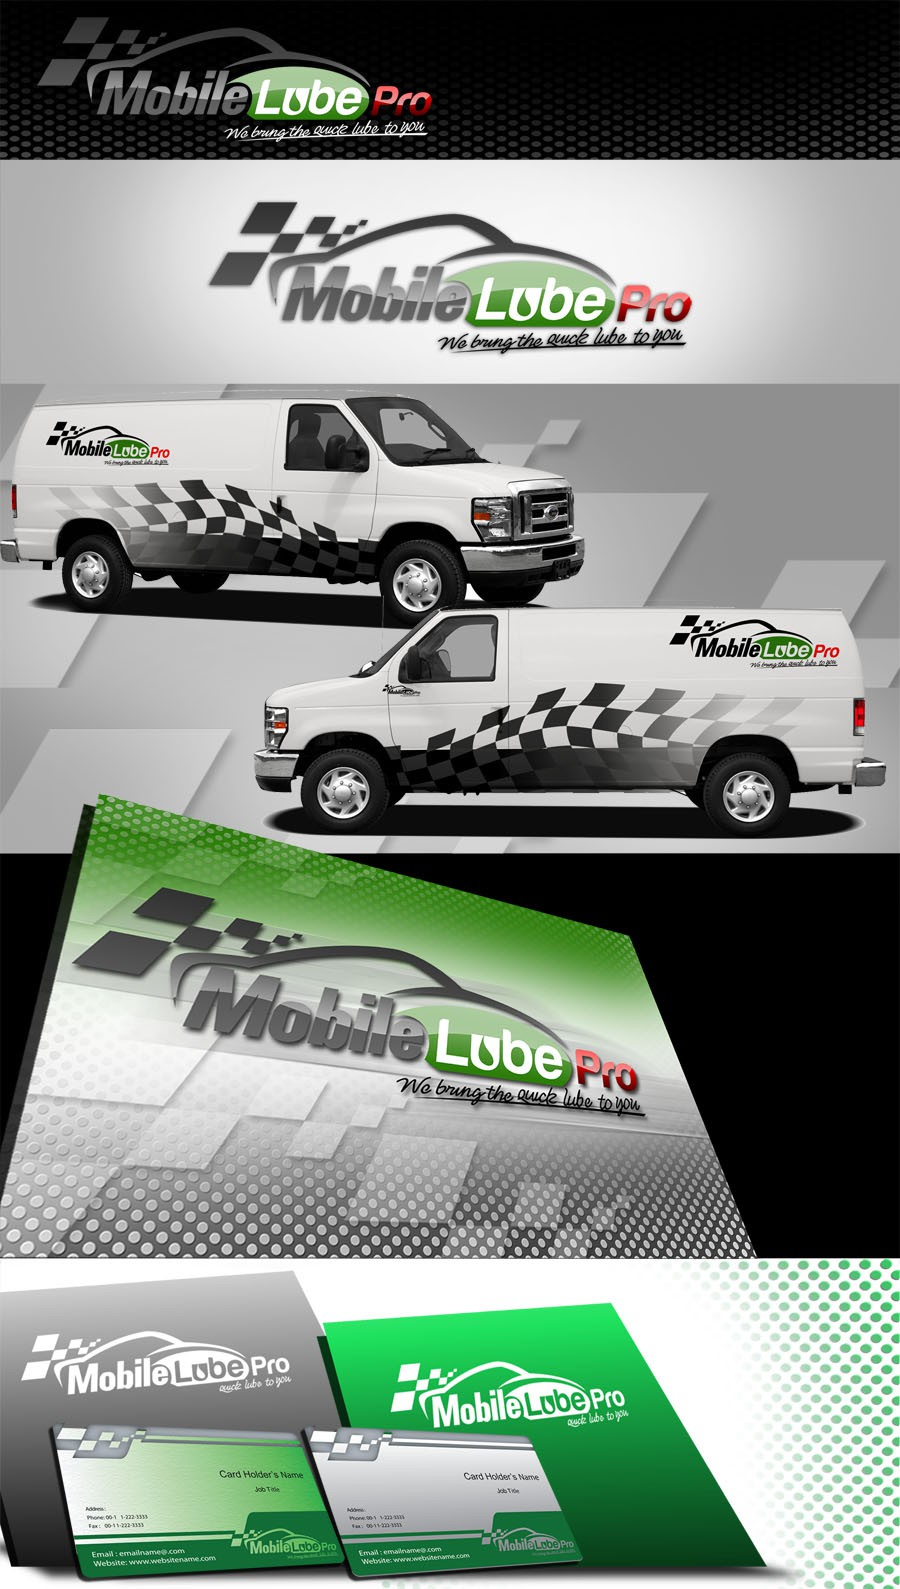 Create the next logo for Mobile Lube Pro